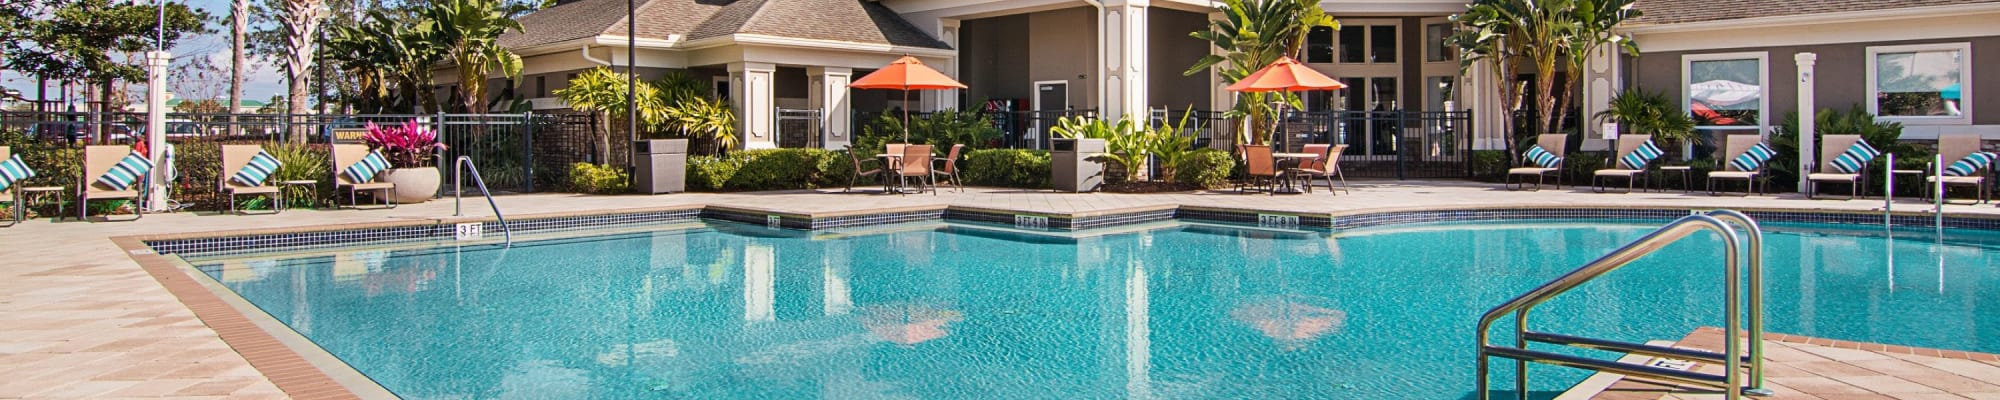 Virtual tour at Landings at Four Corners in Davenport, Florida